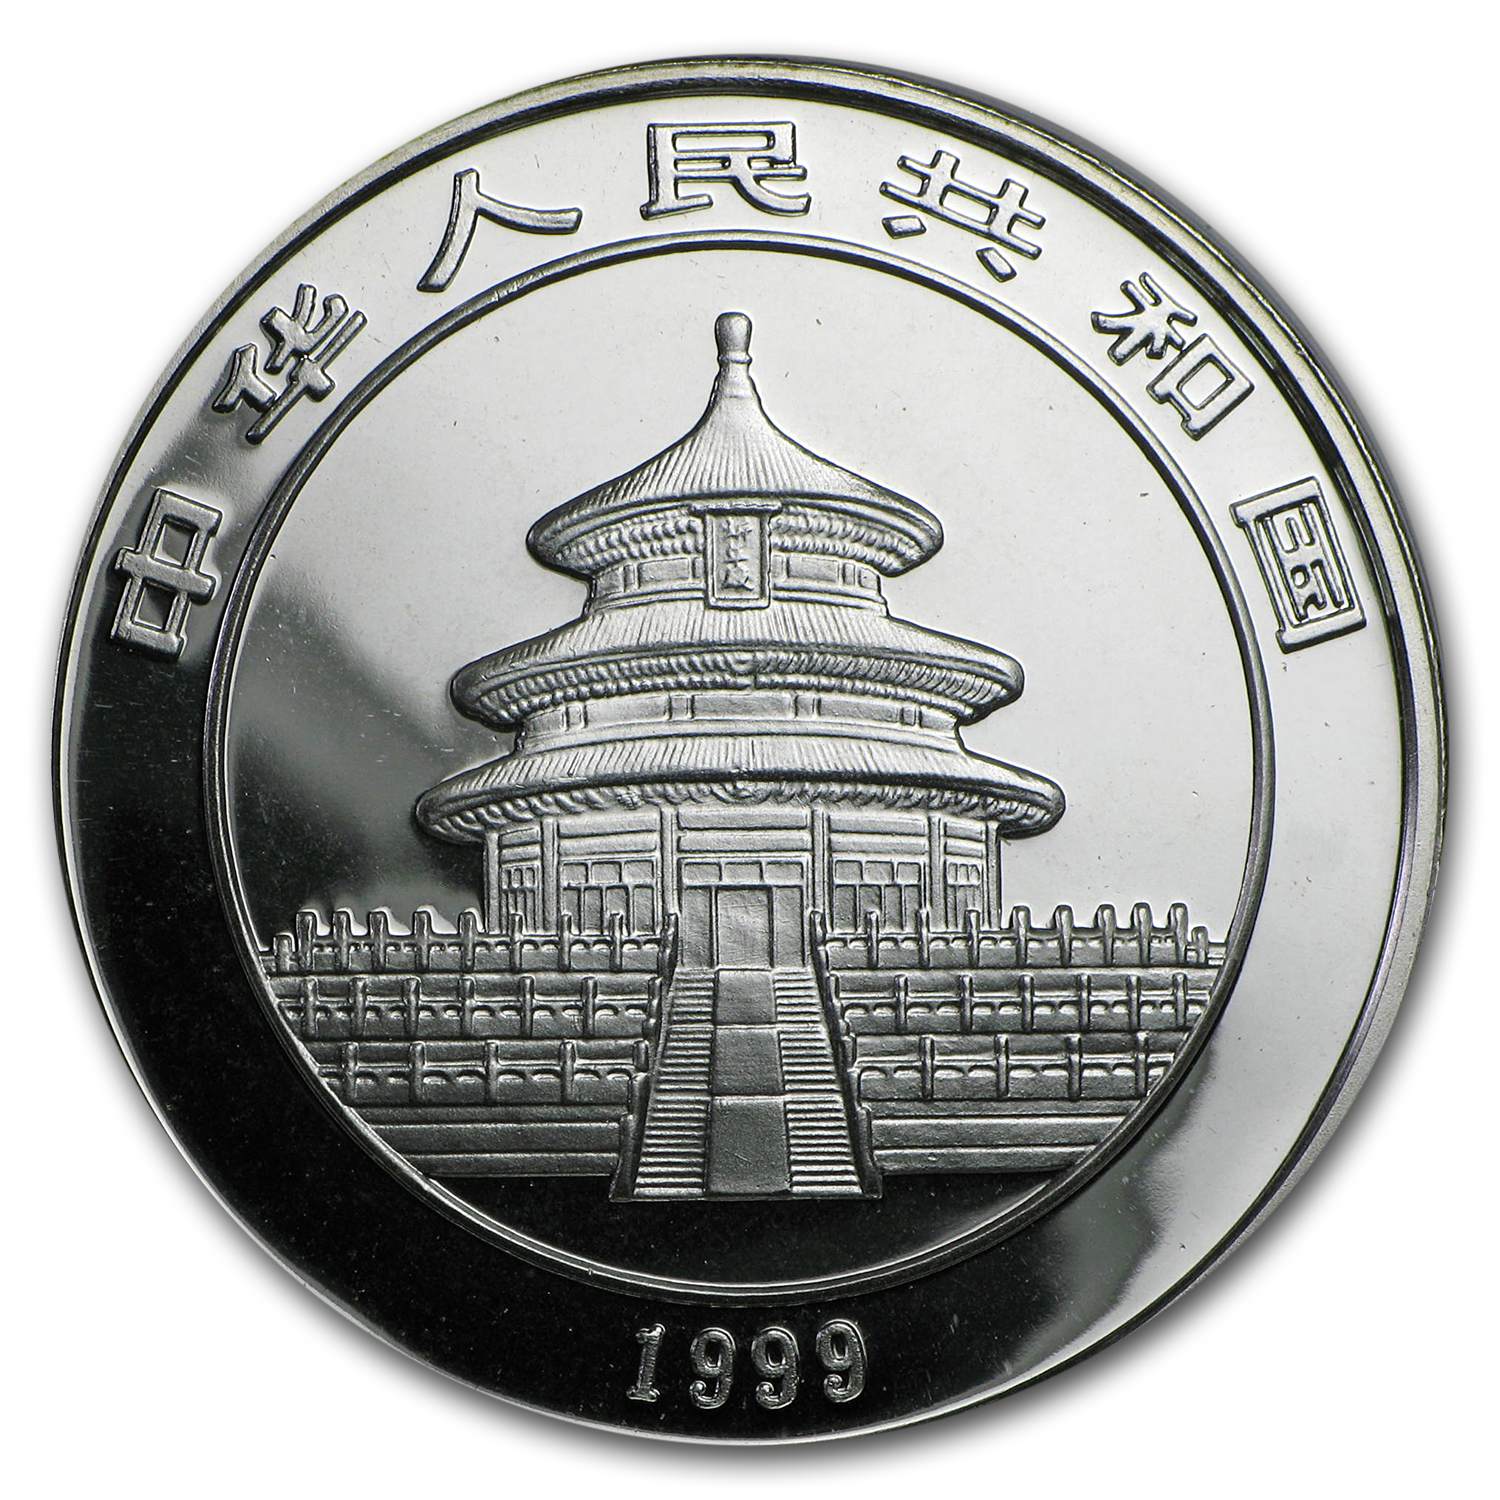 1999 China 1 oz Silver Panda Small Date BU (Capsule only)